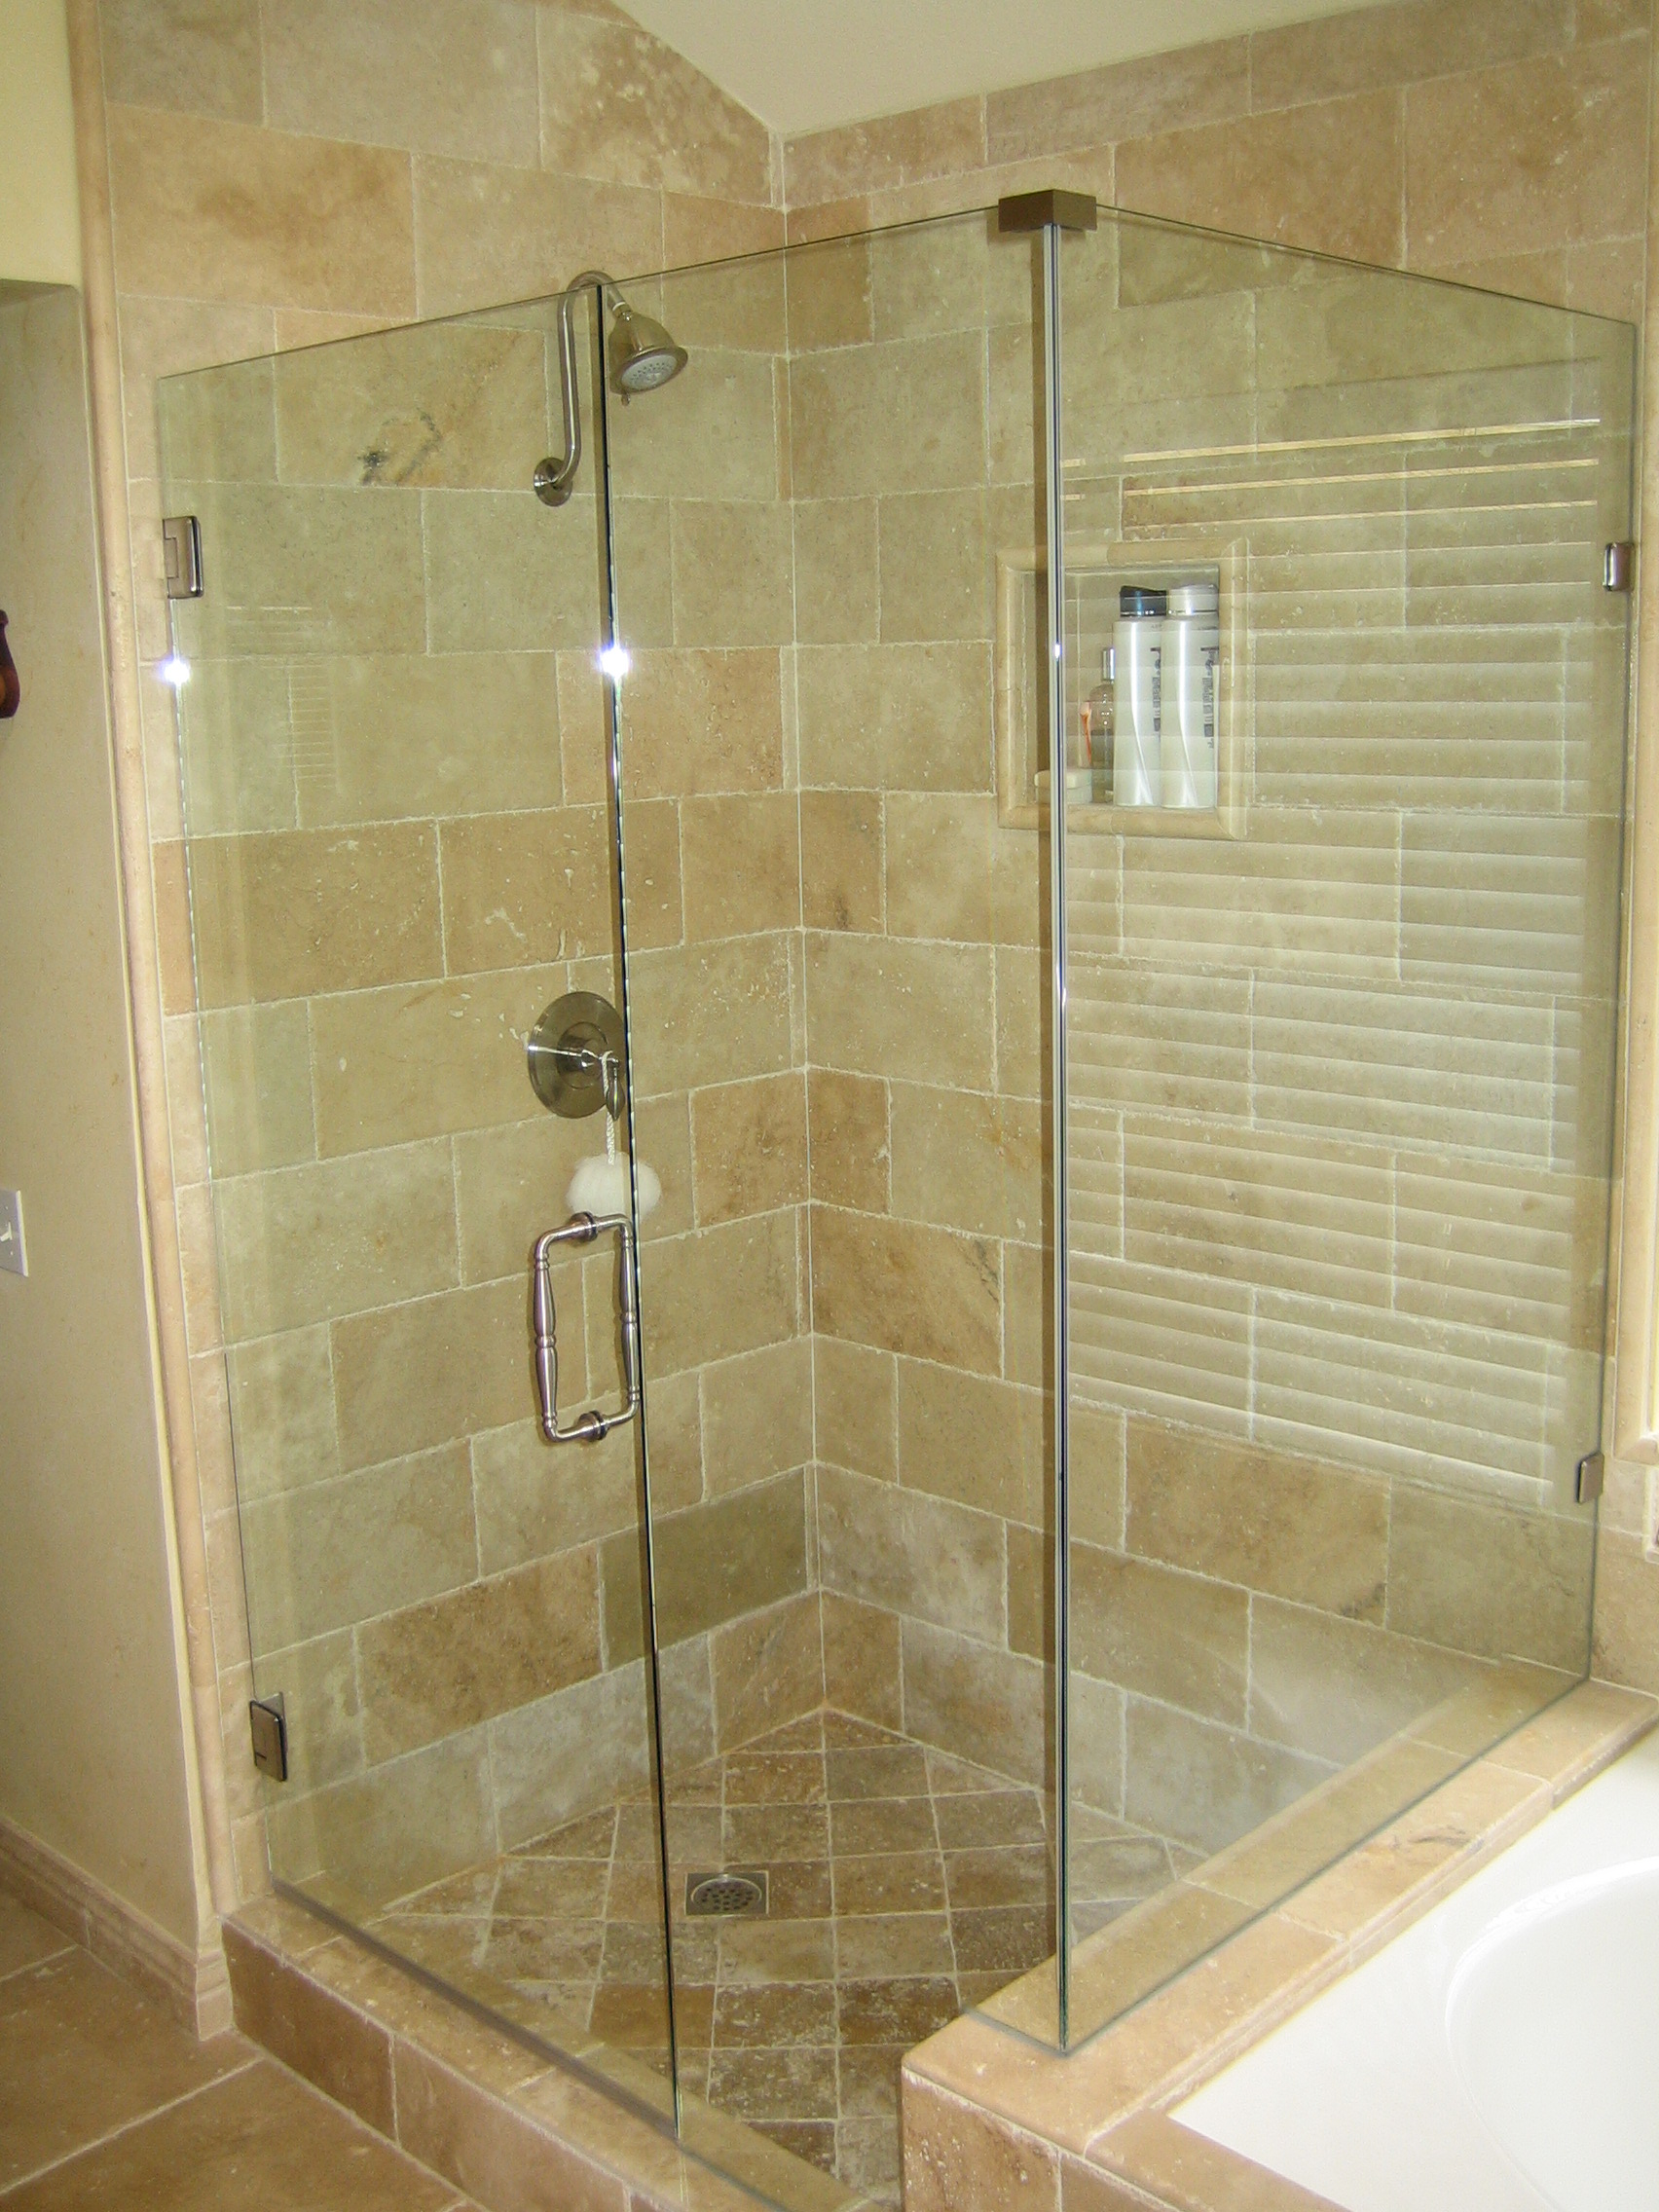 Remarkable Images of Bathroom with Frameless Shower Doors 1704 x 2272 · 1049 kB · jpeg